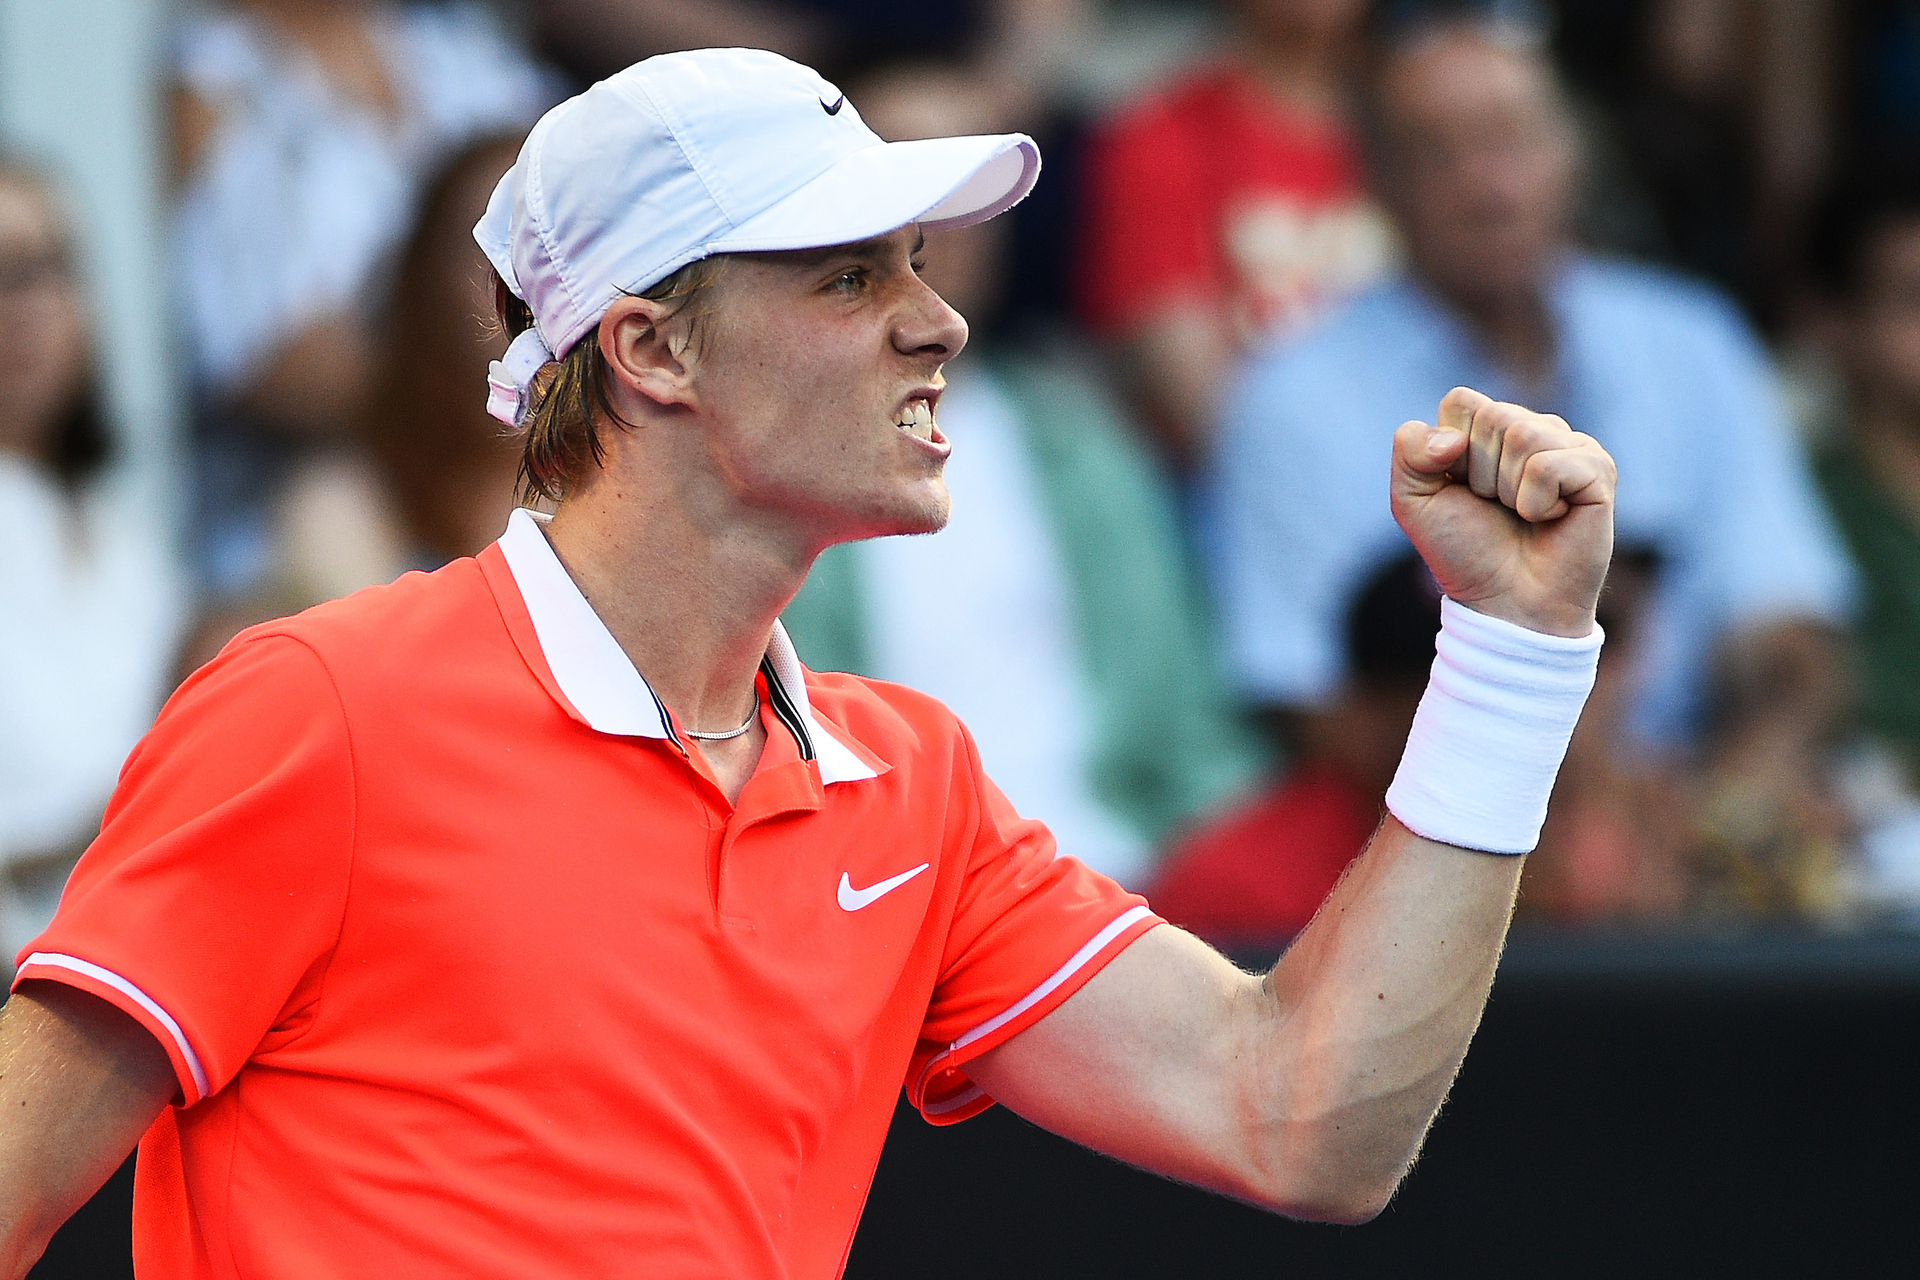 ASB Classic second seed Denis Shapovalov learning to ignore the hype